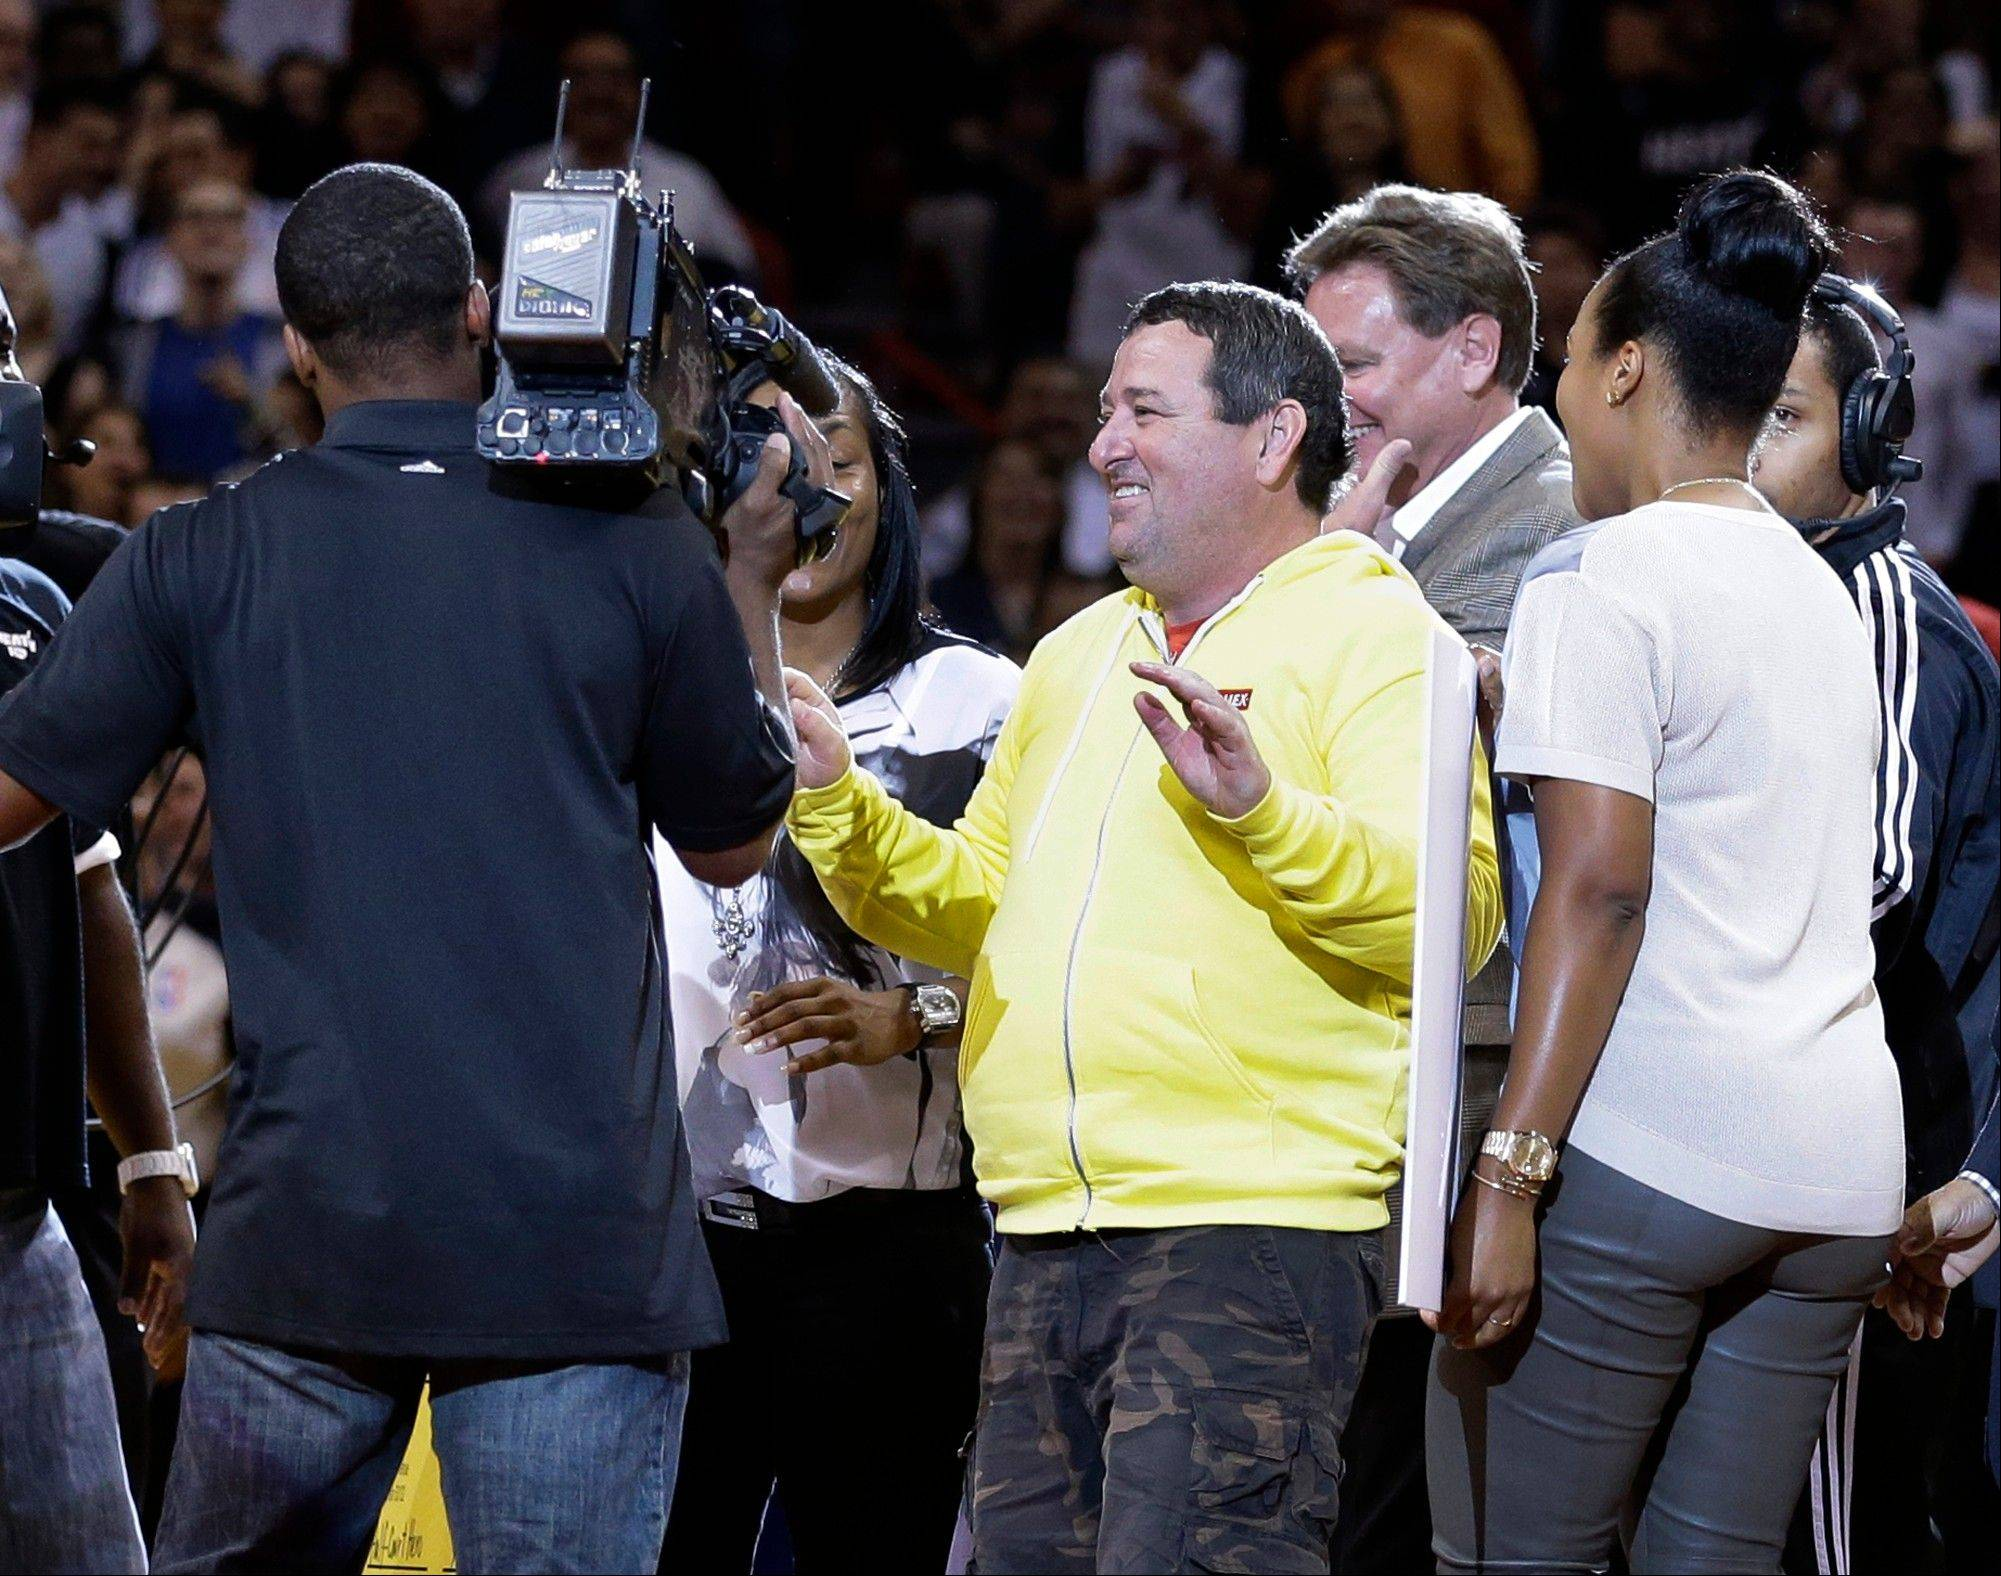 Michael Drysch, center, a 50-year-old computer technician from McHenry celebrates after making a half-court shot to win $75,000 and a hug from LeBron James, during the second half between the Miami Heat and the Detroit Pistons, Friday in Miami. As part of a contest sponsored by James' foundation, Drysch hit a one-handed hook shot from midcourt between periods in the game.